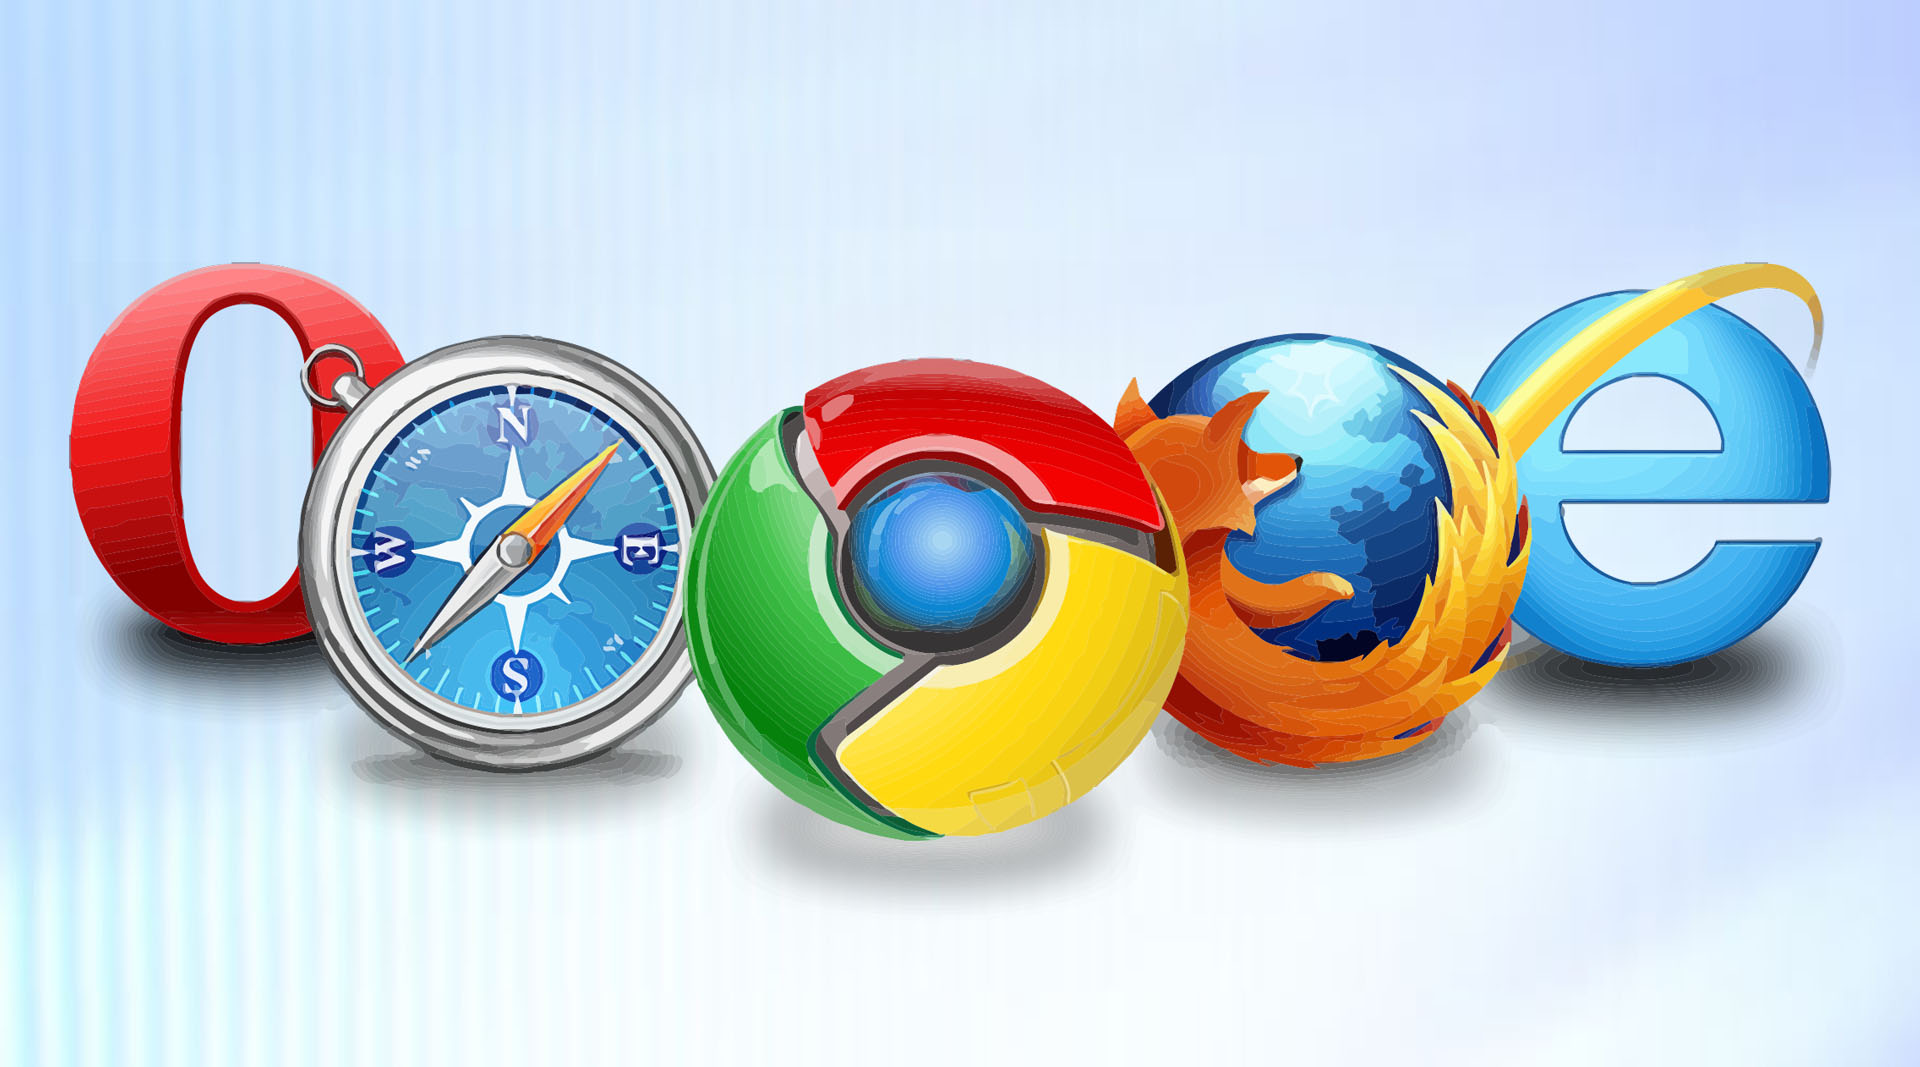 Which web browser are you using?